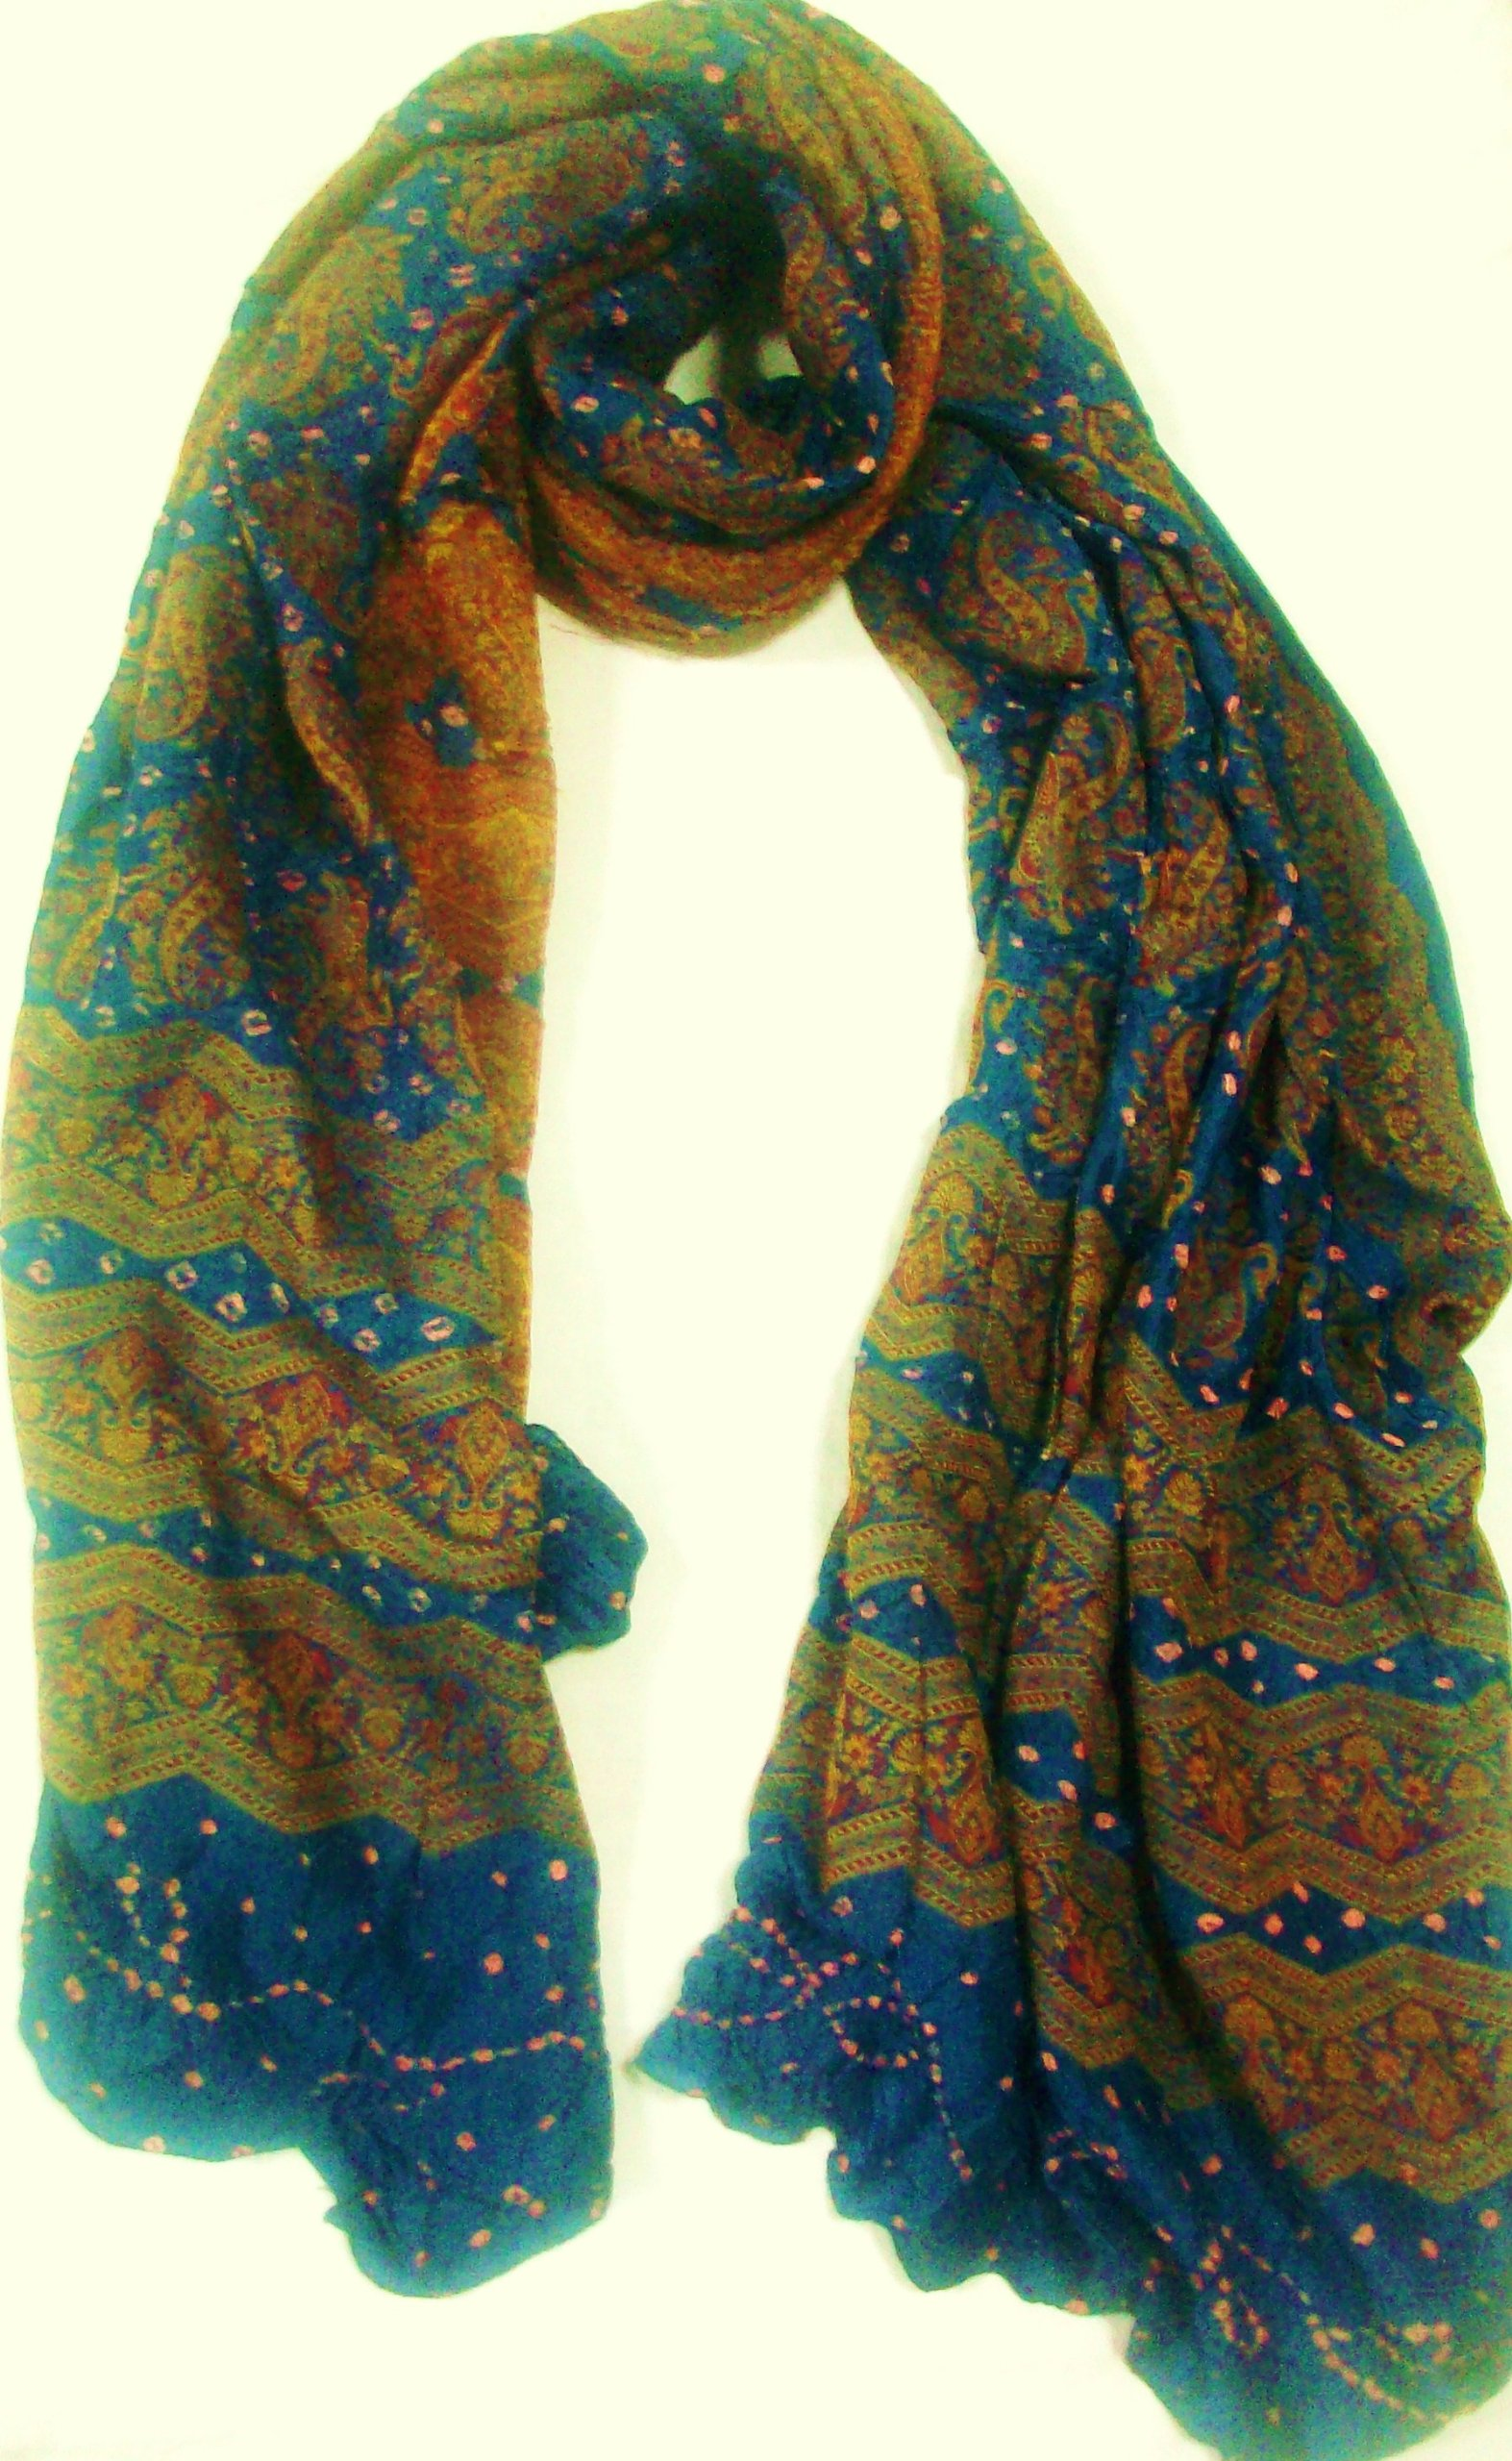 100% Silk, High Quality, Unique Designer Print Big Scarf, Hand Woven with Beautiful Border Accessory, Sofa Throw, Ethnic Paisly Blue Beige Great Gift for Girls Women Ladies